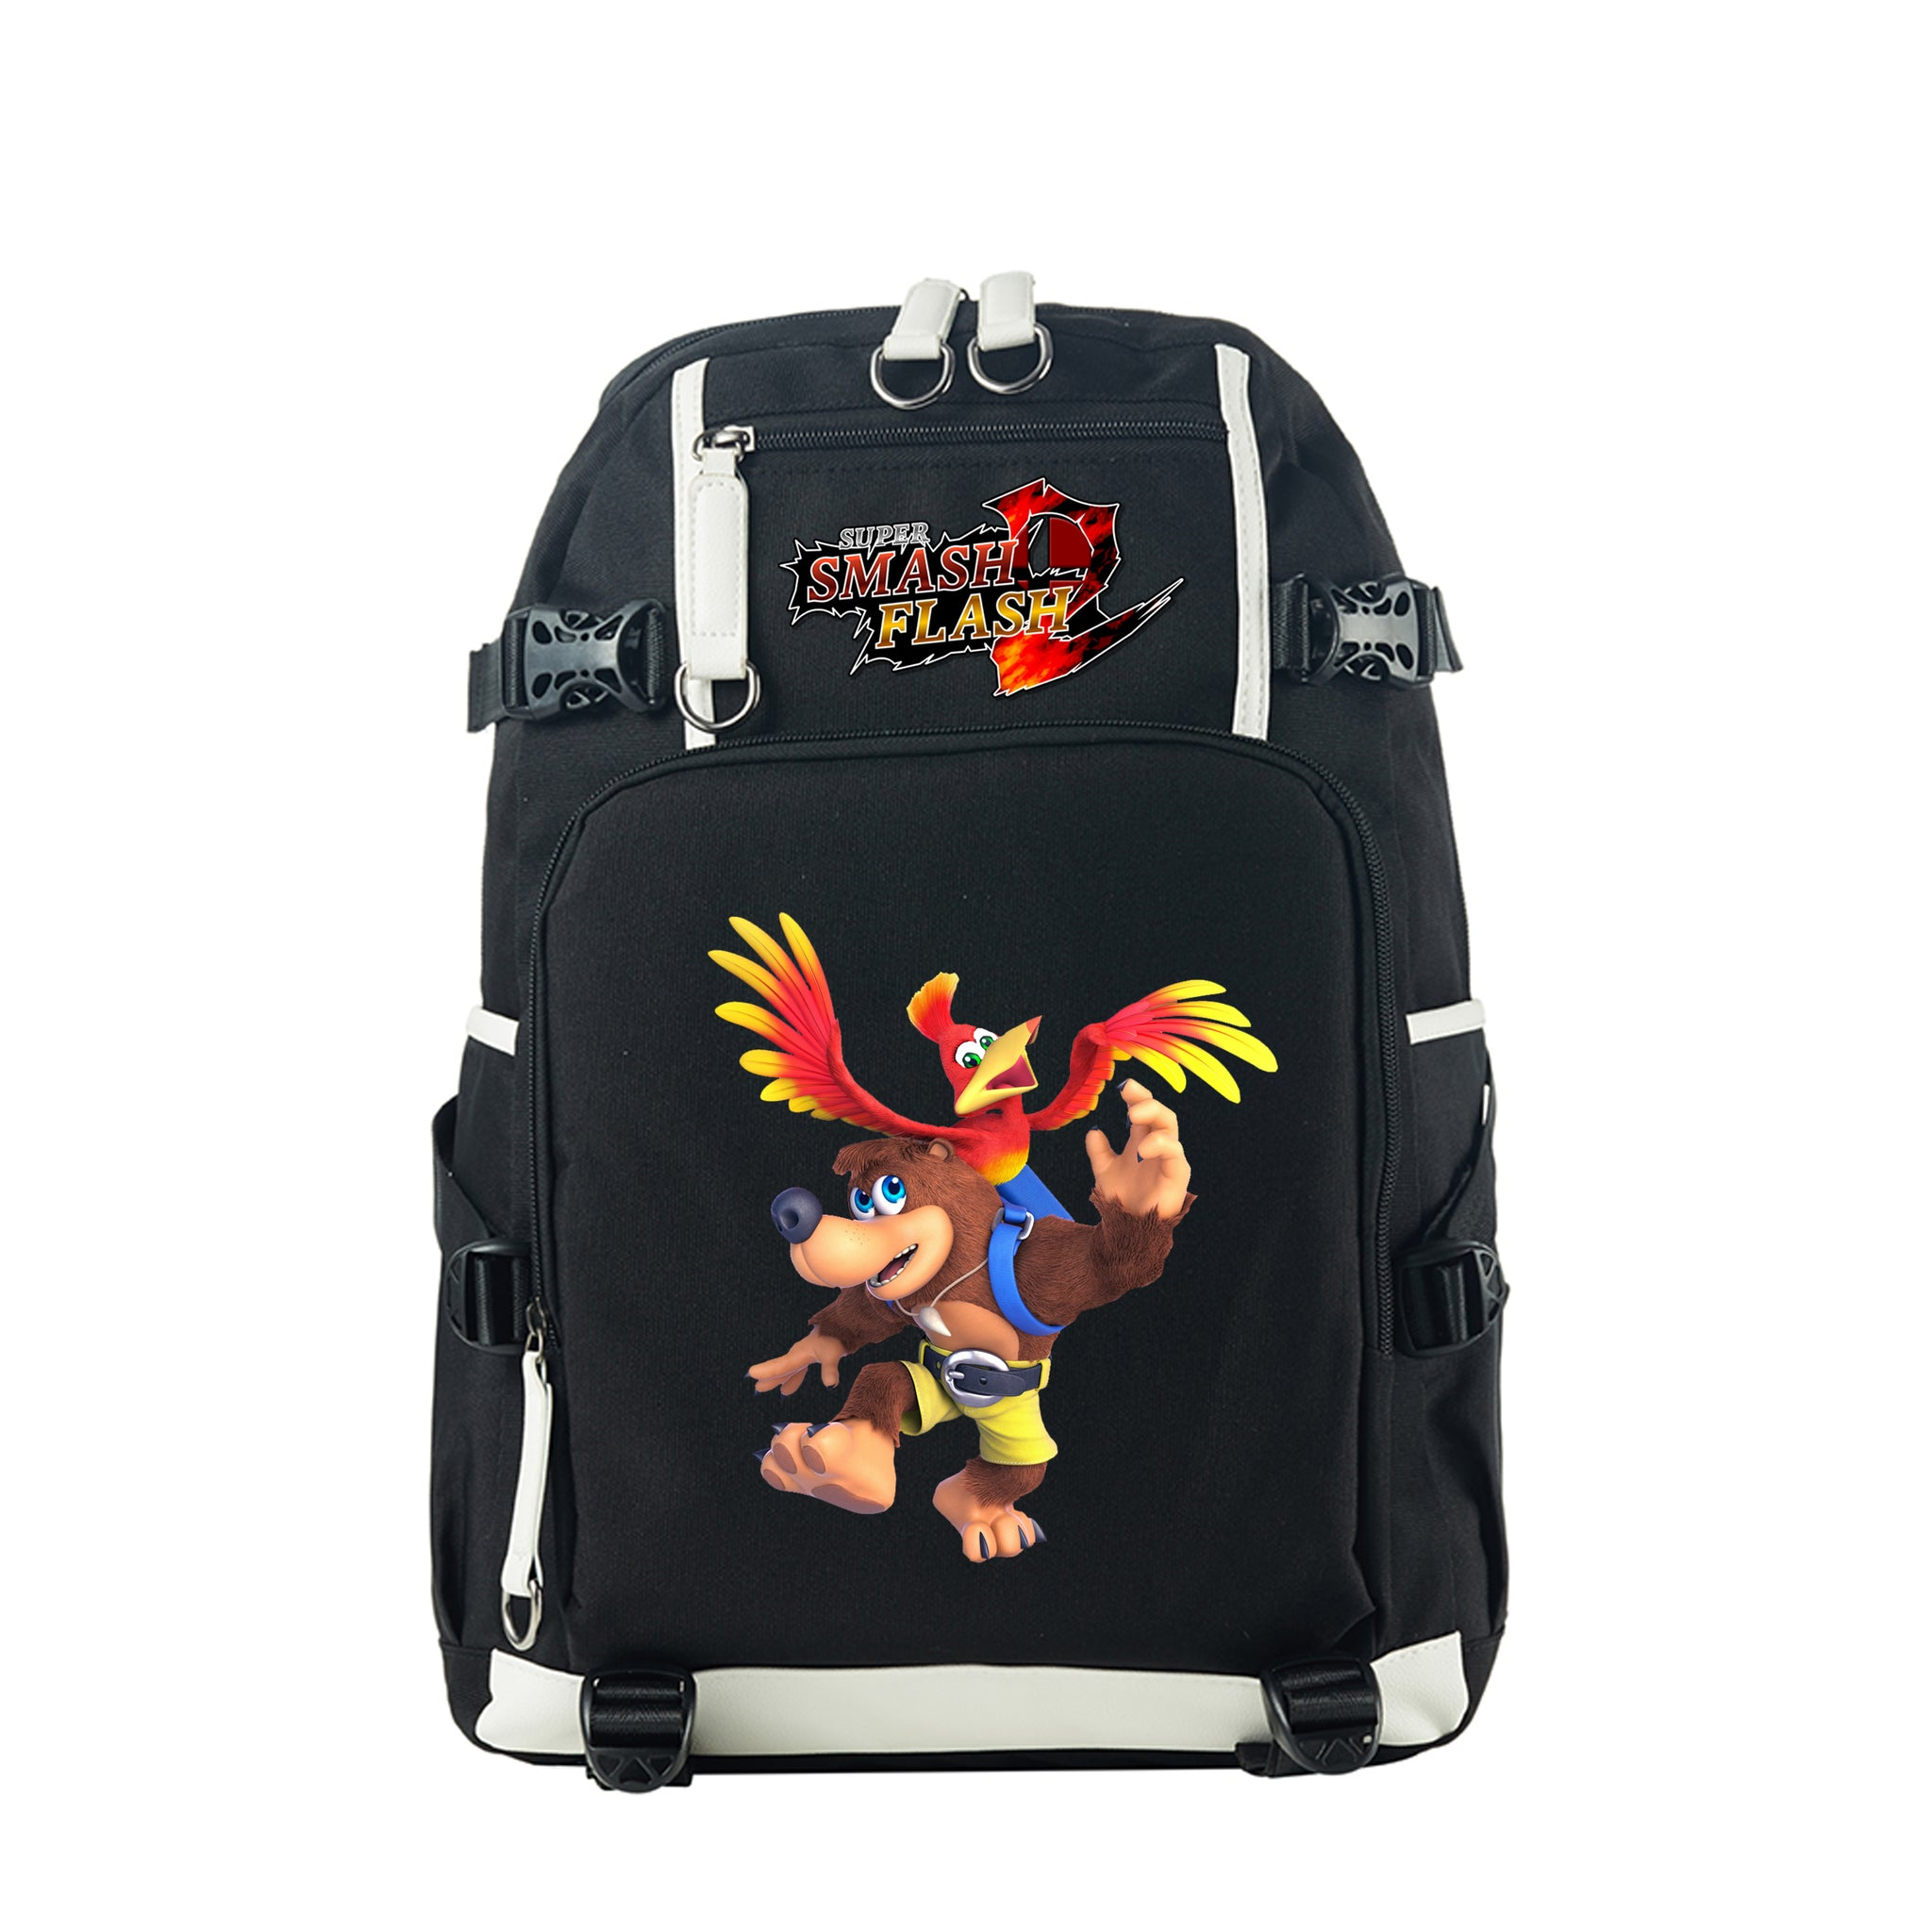 Super Smash Bros Ultimate Theme Backpack for School 17 Inch